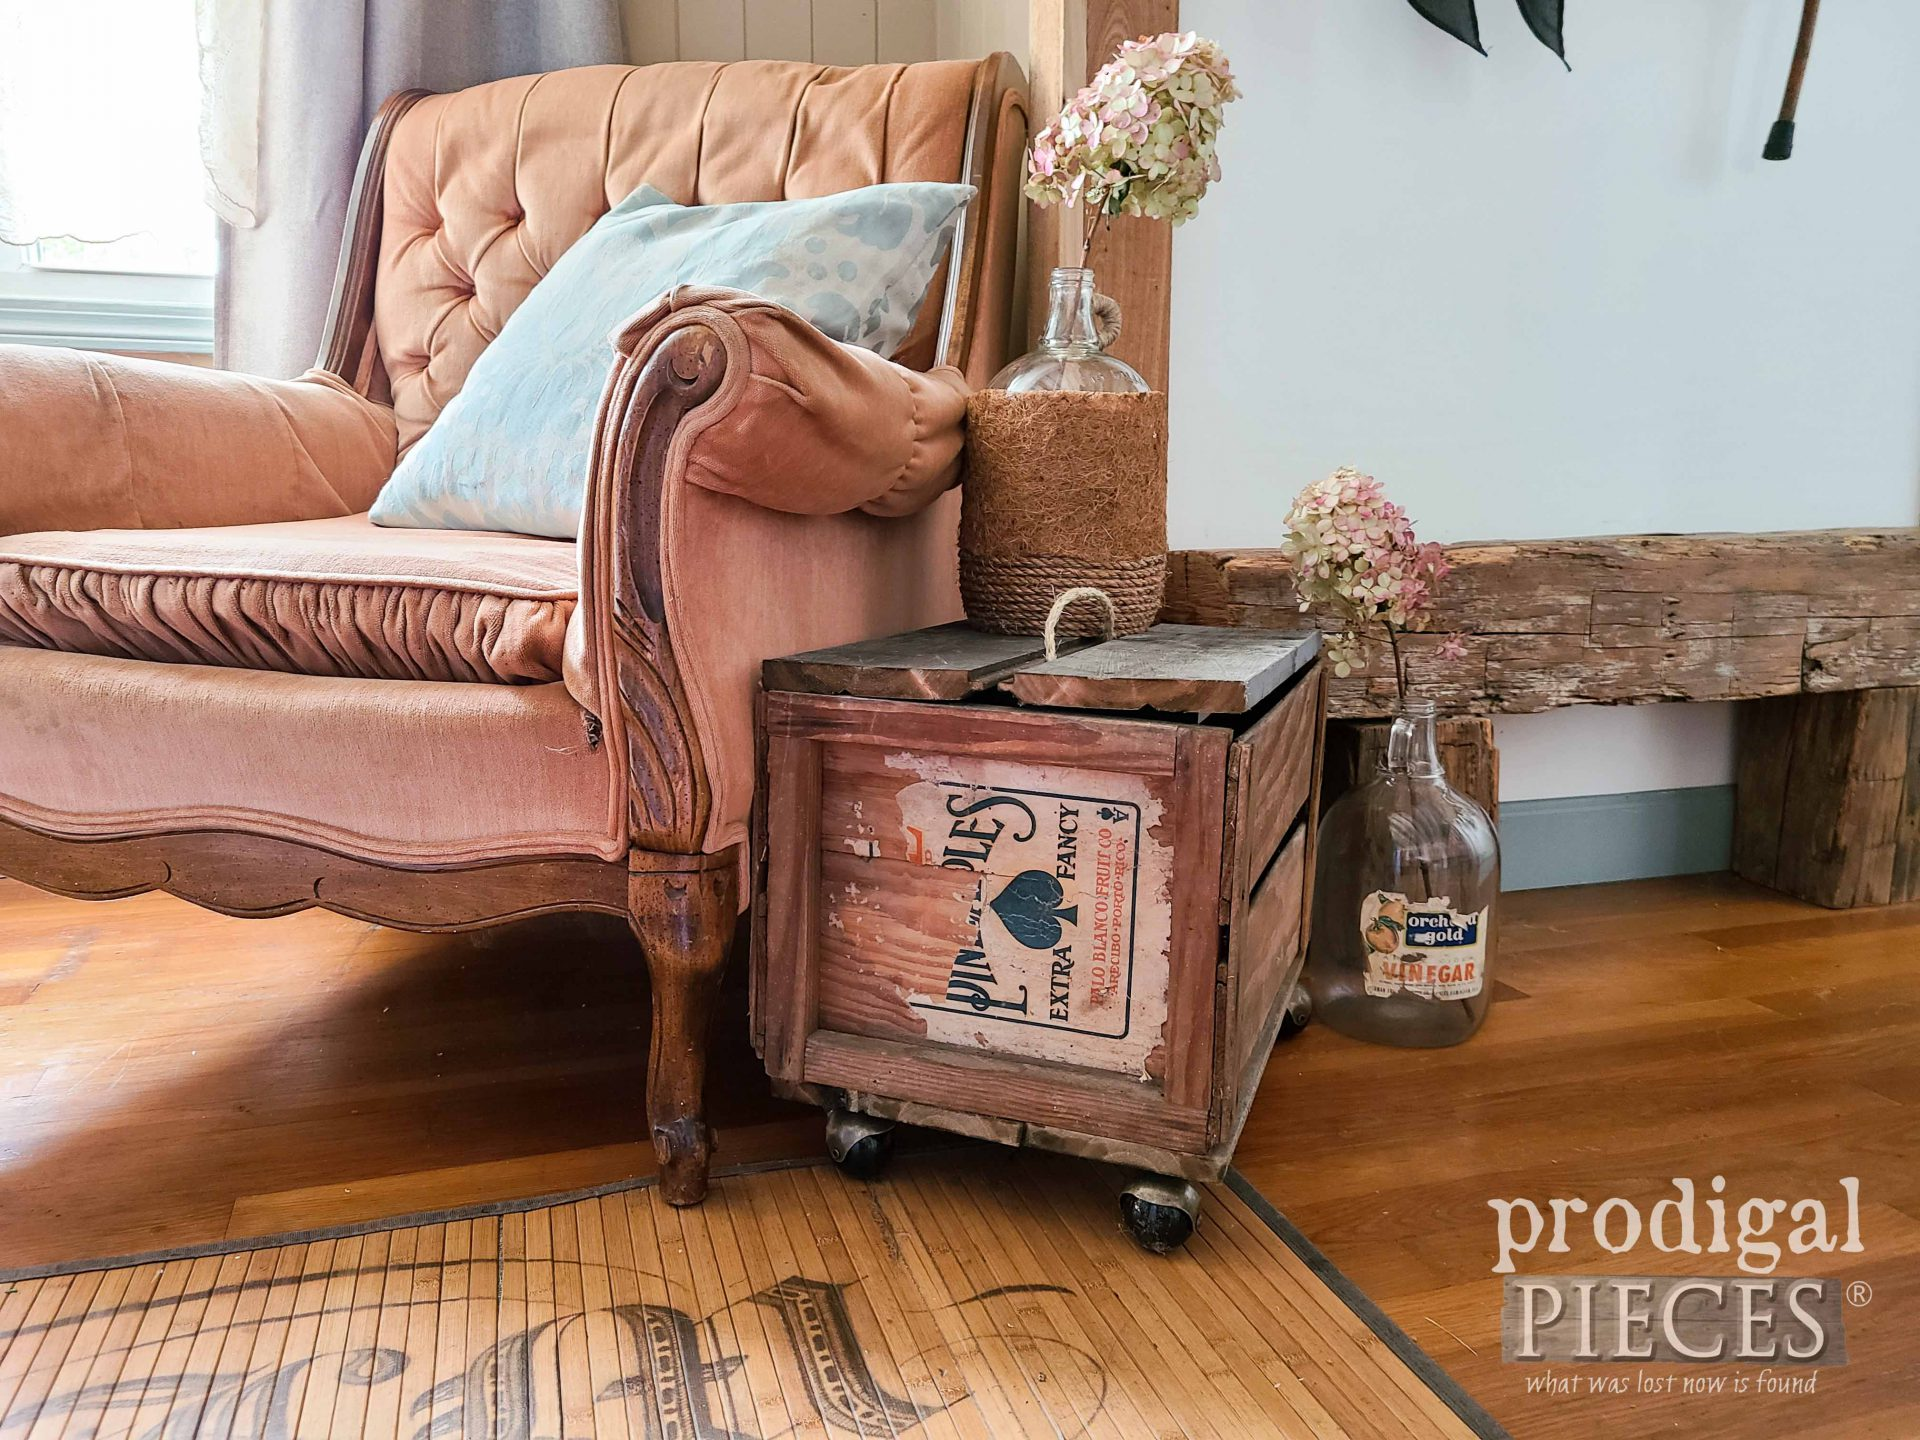 Flea Market Crate Table Made by Larissa of Prodigal Pieces   prodigalpieces.com #prodigalpieces #farmhouse #fleamarket #furniture #table